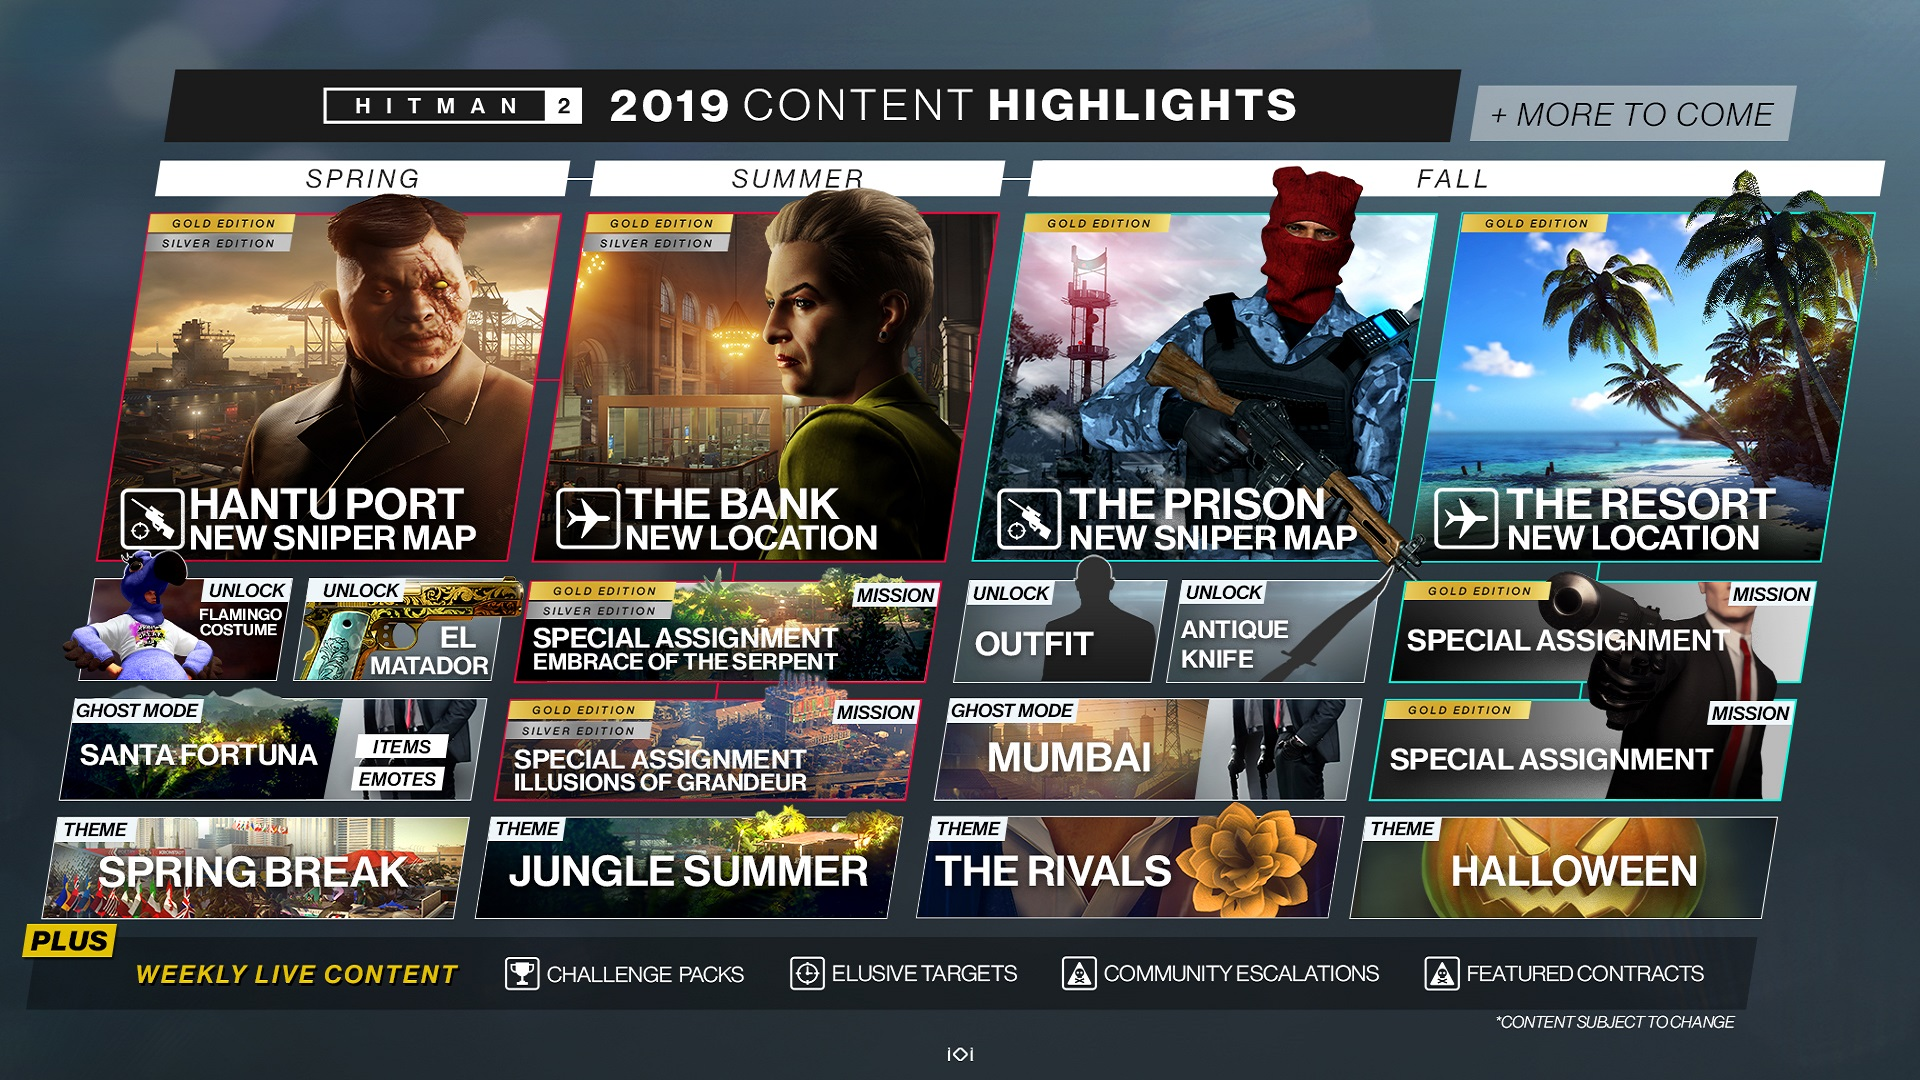 Hitman 2 2019 content highlights